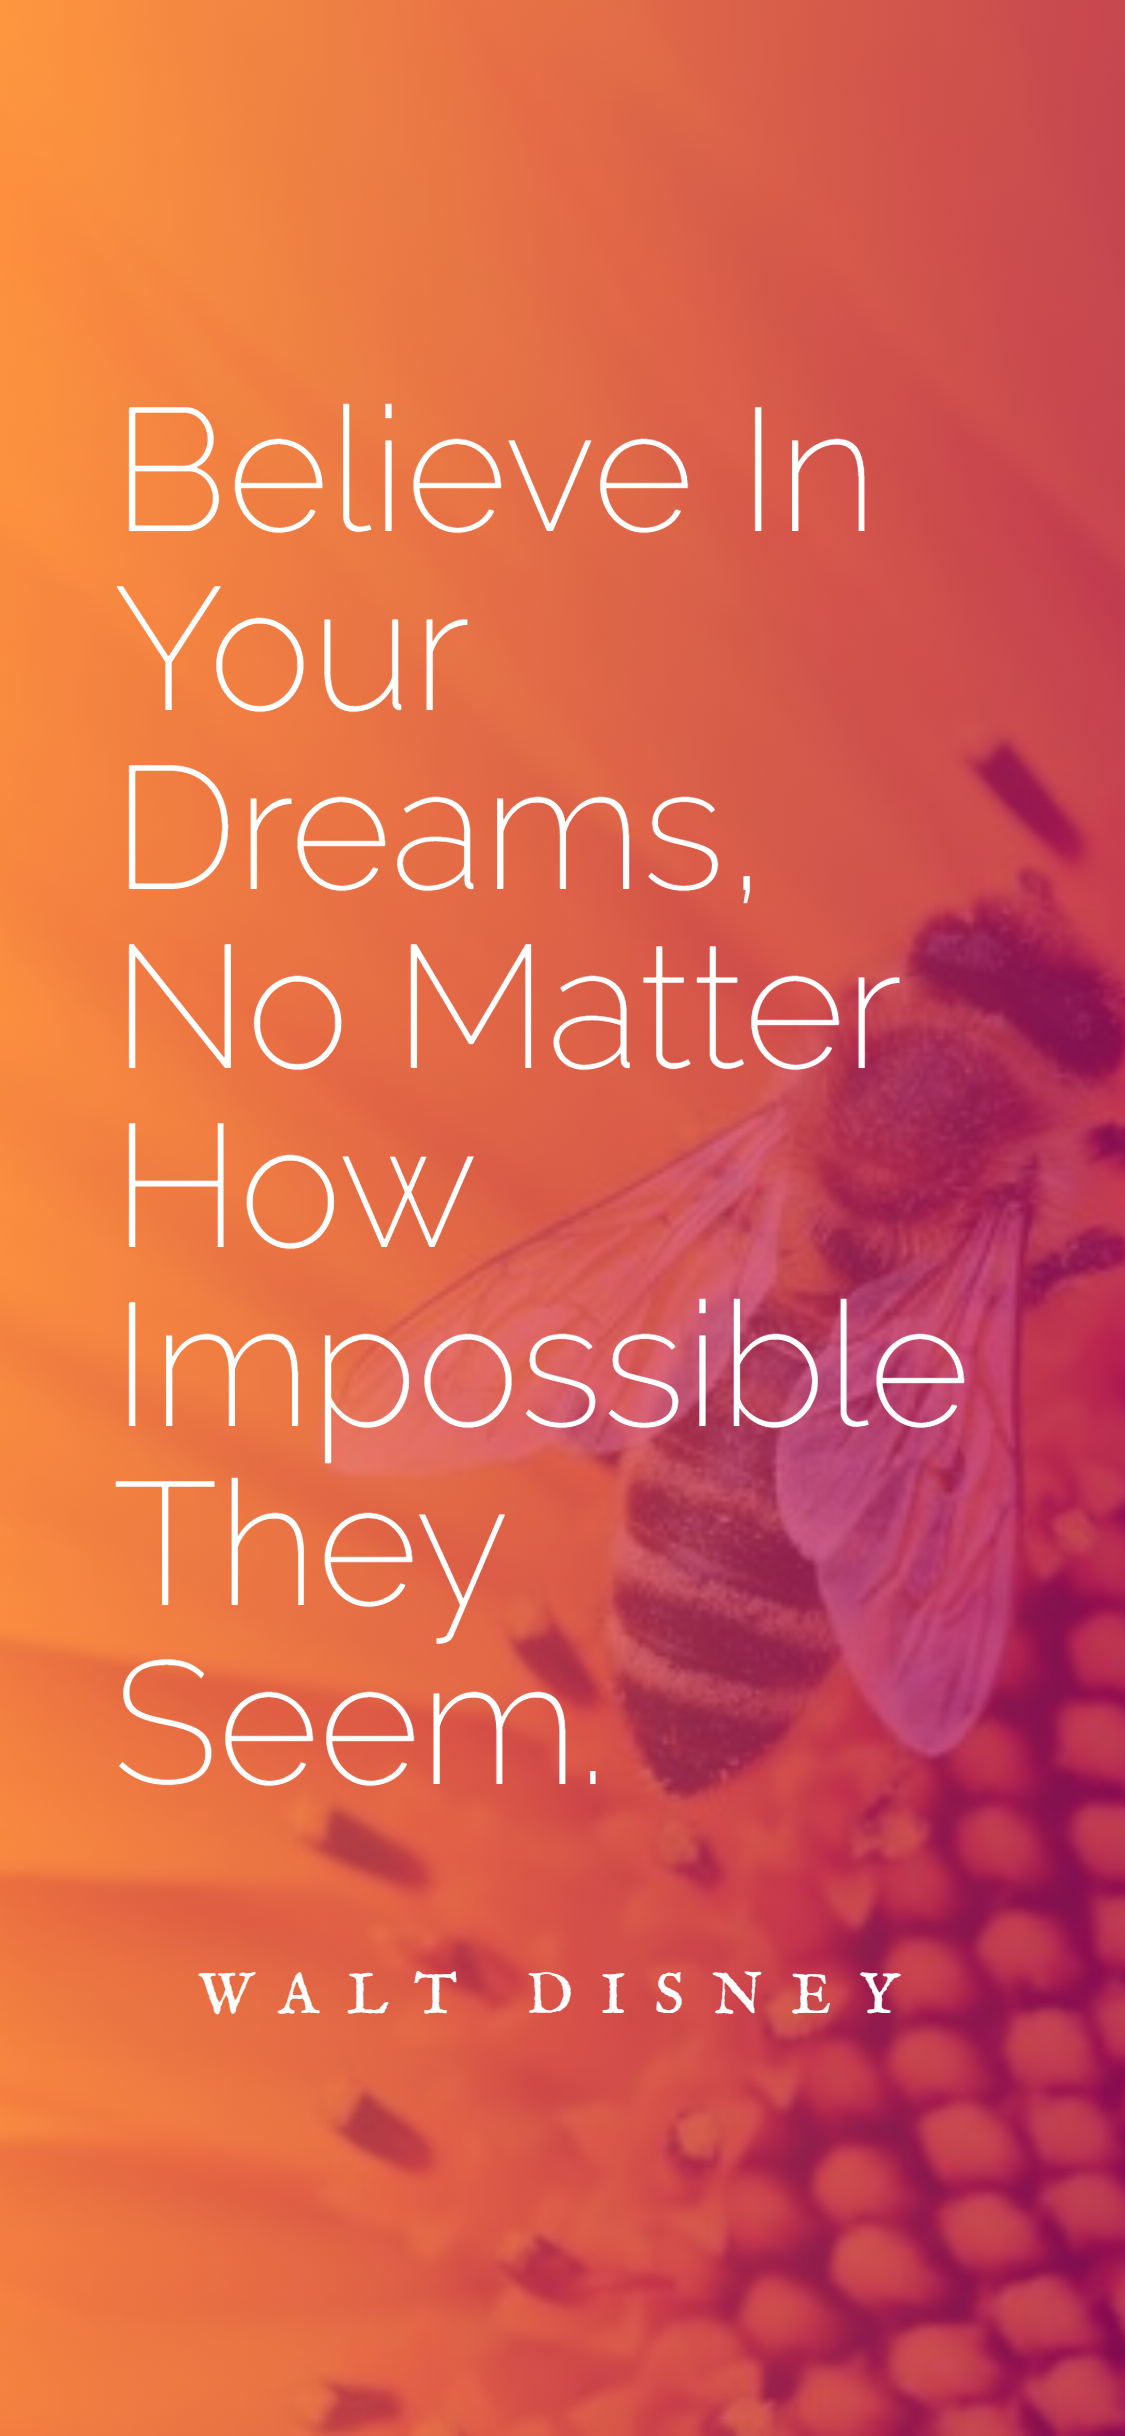 40 Impossible Quotes 2020 Impossible Quotes Believe In Yourself Quotes Dream Quotes